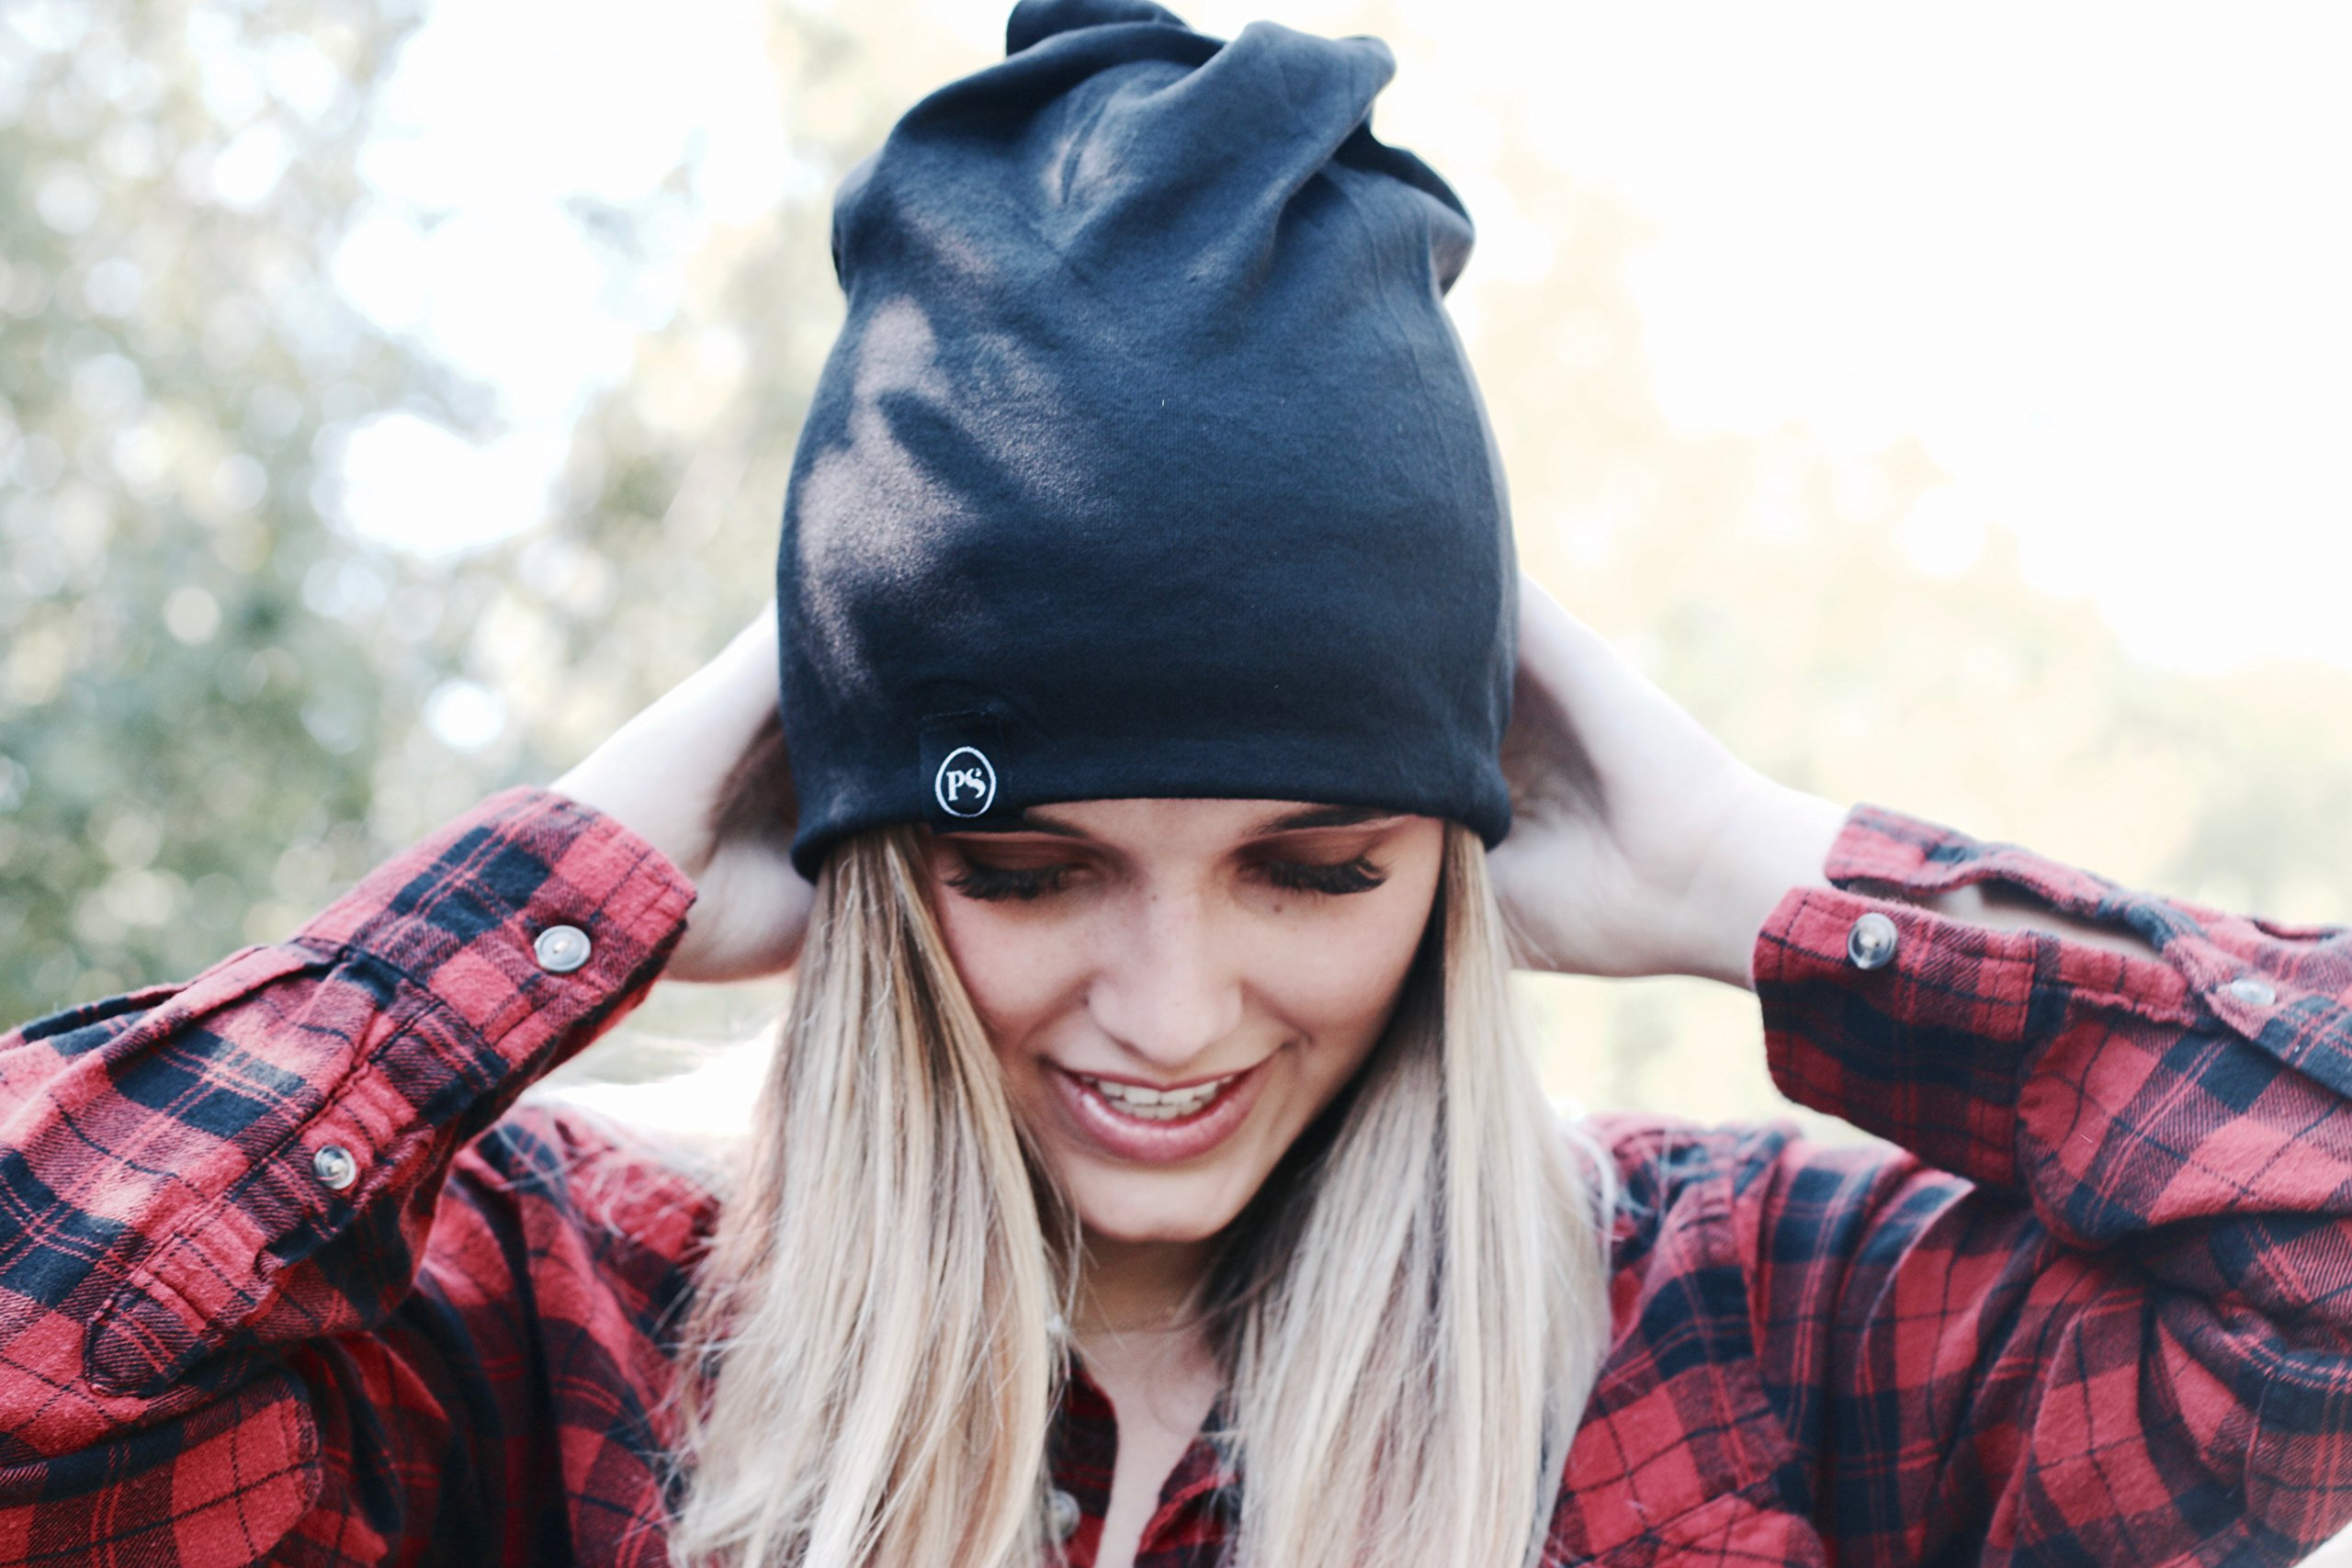 Peek a Boo Women's Beanie Slouchy Beanie with Hole for Pony Tail or Sloppy Bun perfect for Work Out by Pretty Simple (Black) by Pretty Simple (Image #10)